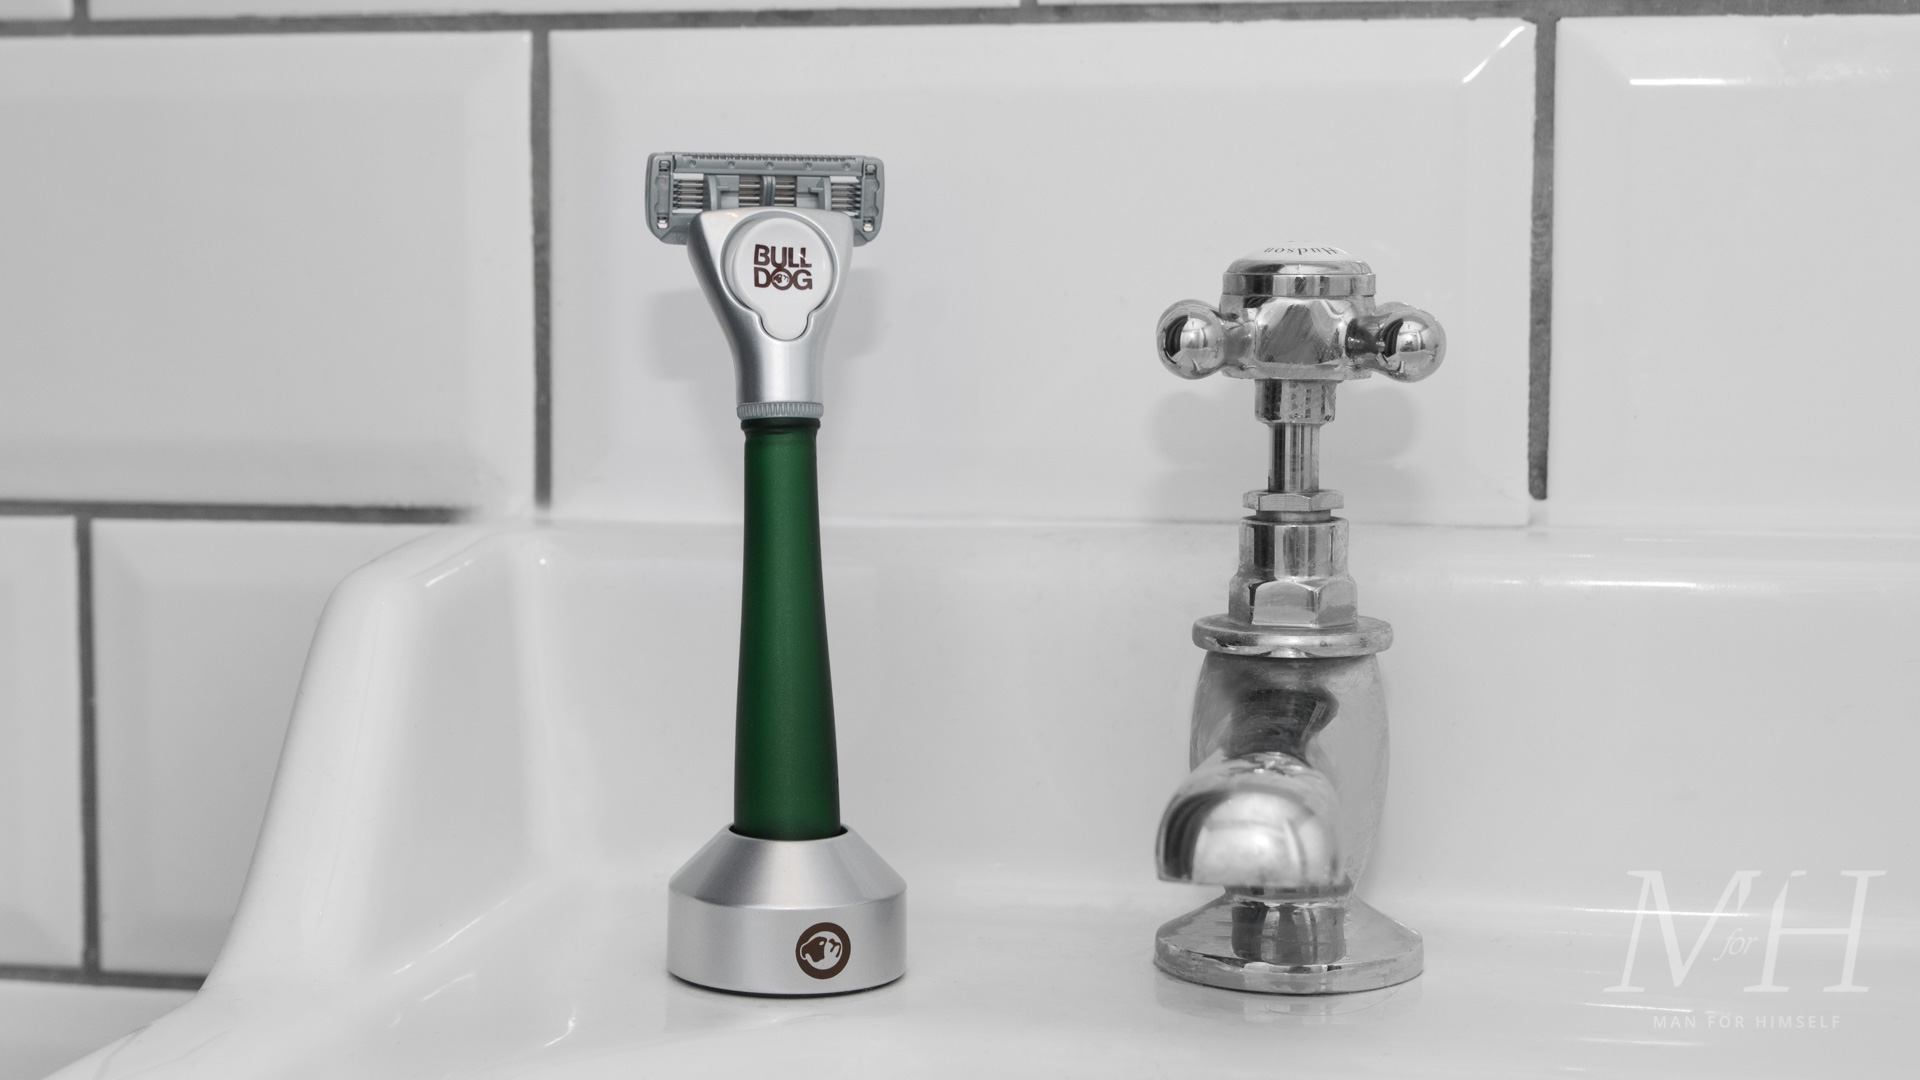 bulldog-skincare-glass-razor-green-shaving-grooming-product-review-man-for-himself-3